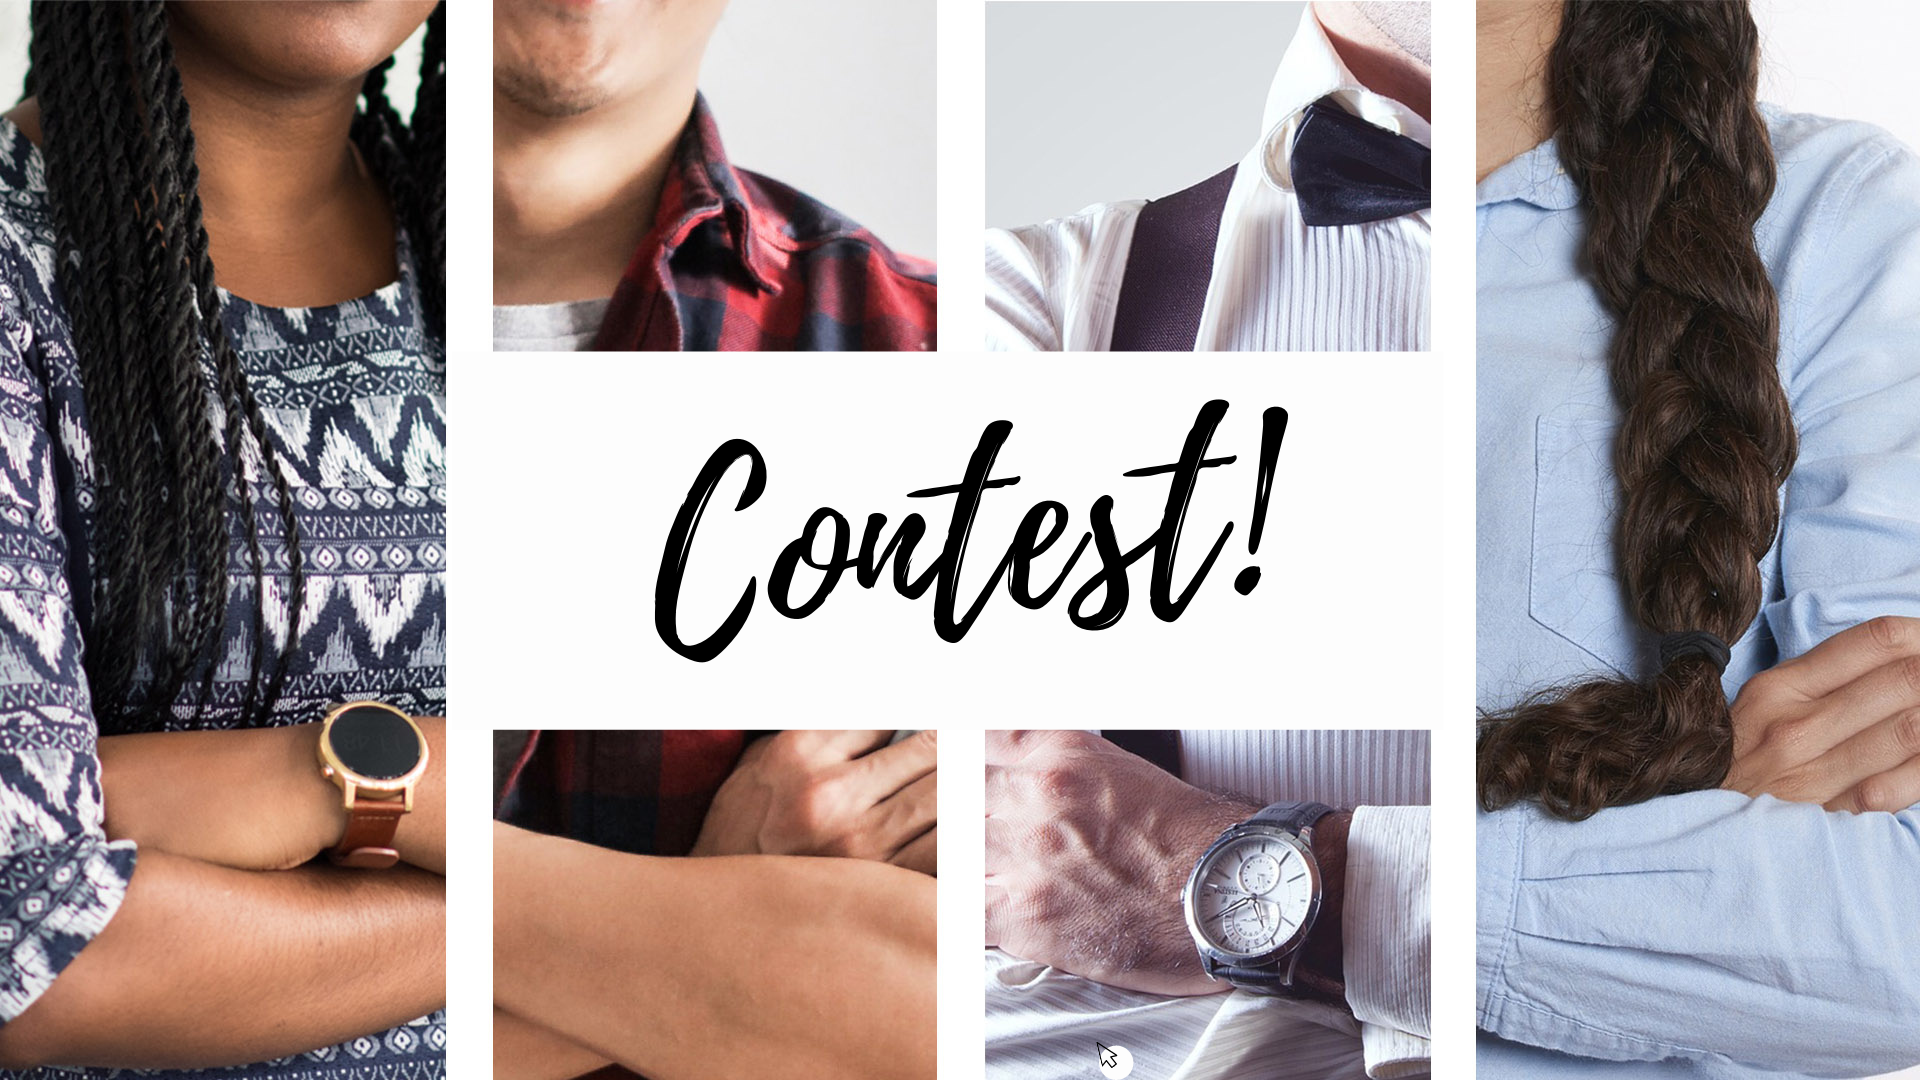 Image of different people for a contest